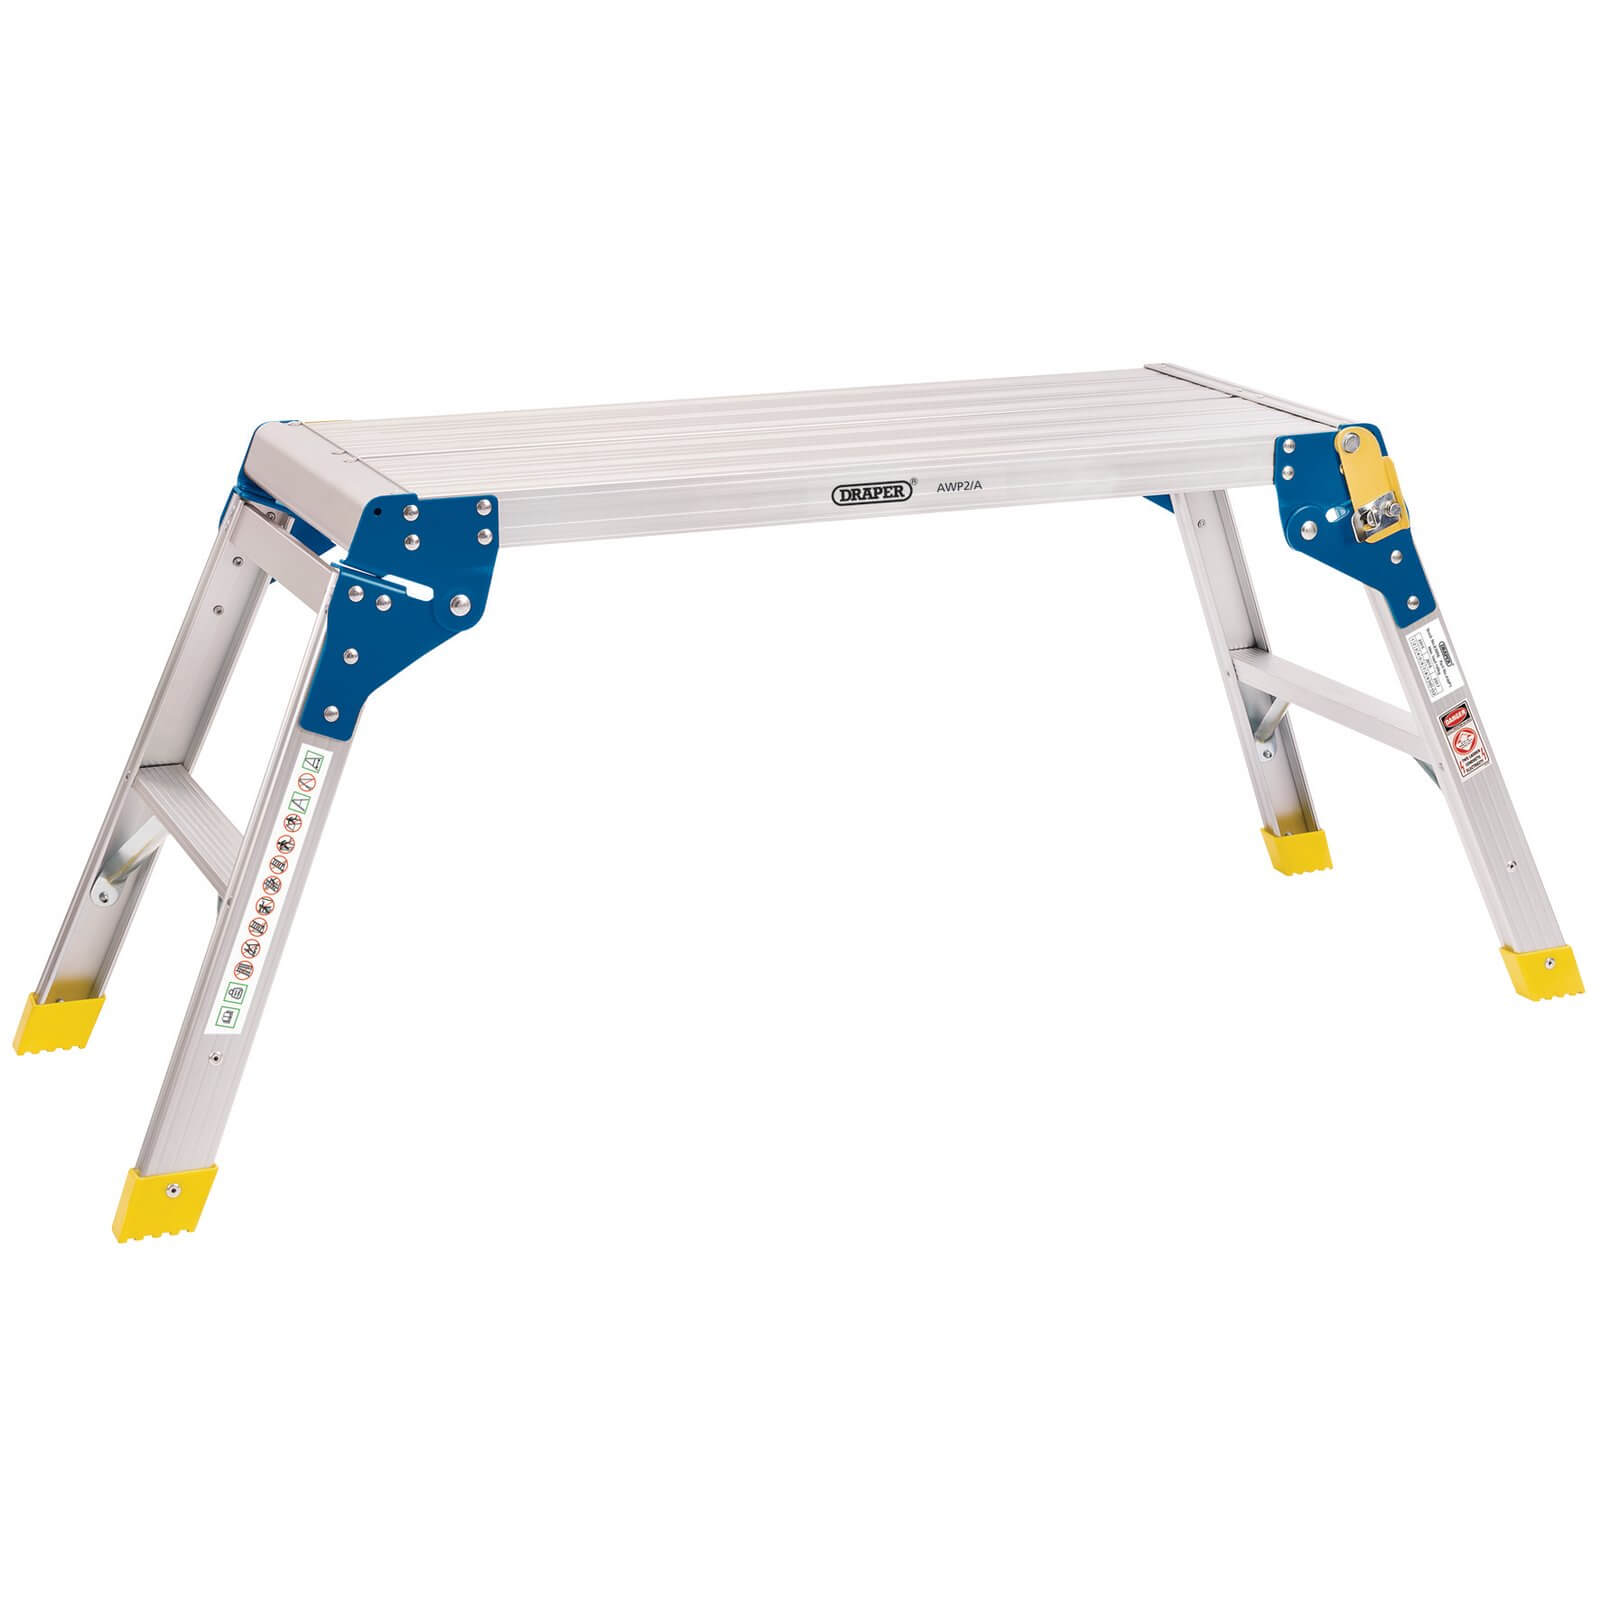 Image of Draper Aluminium Working Platform 2